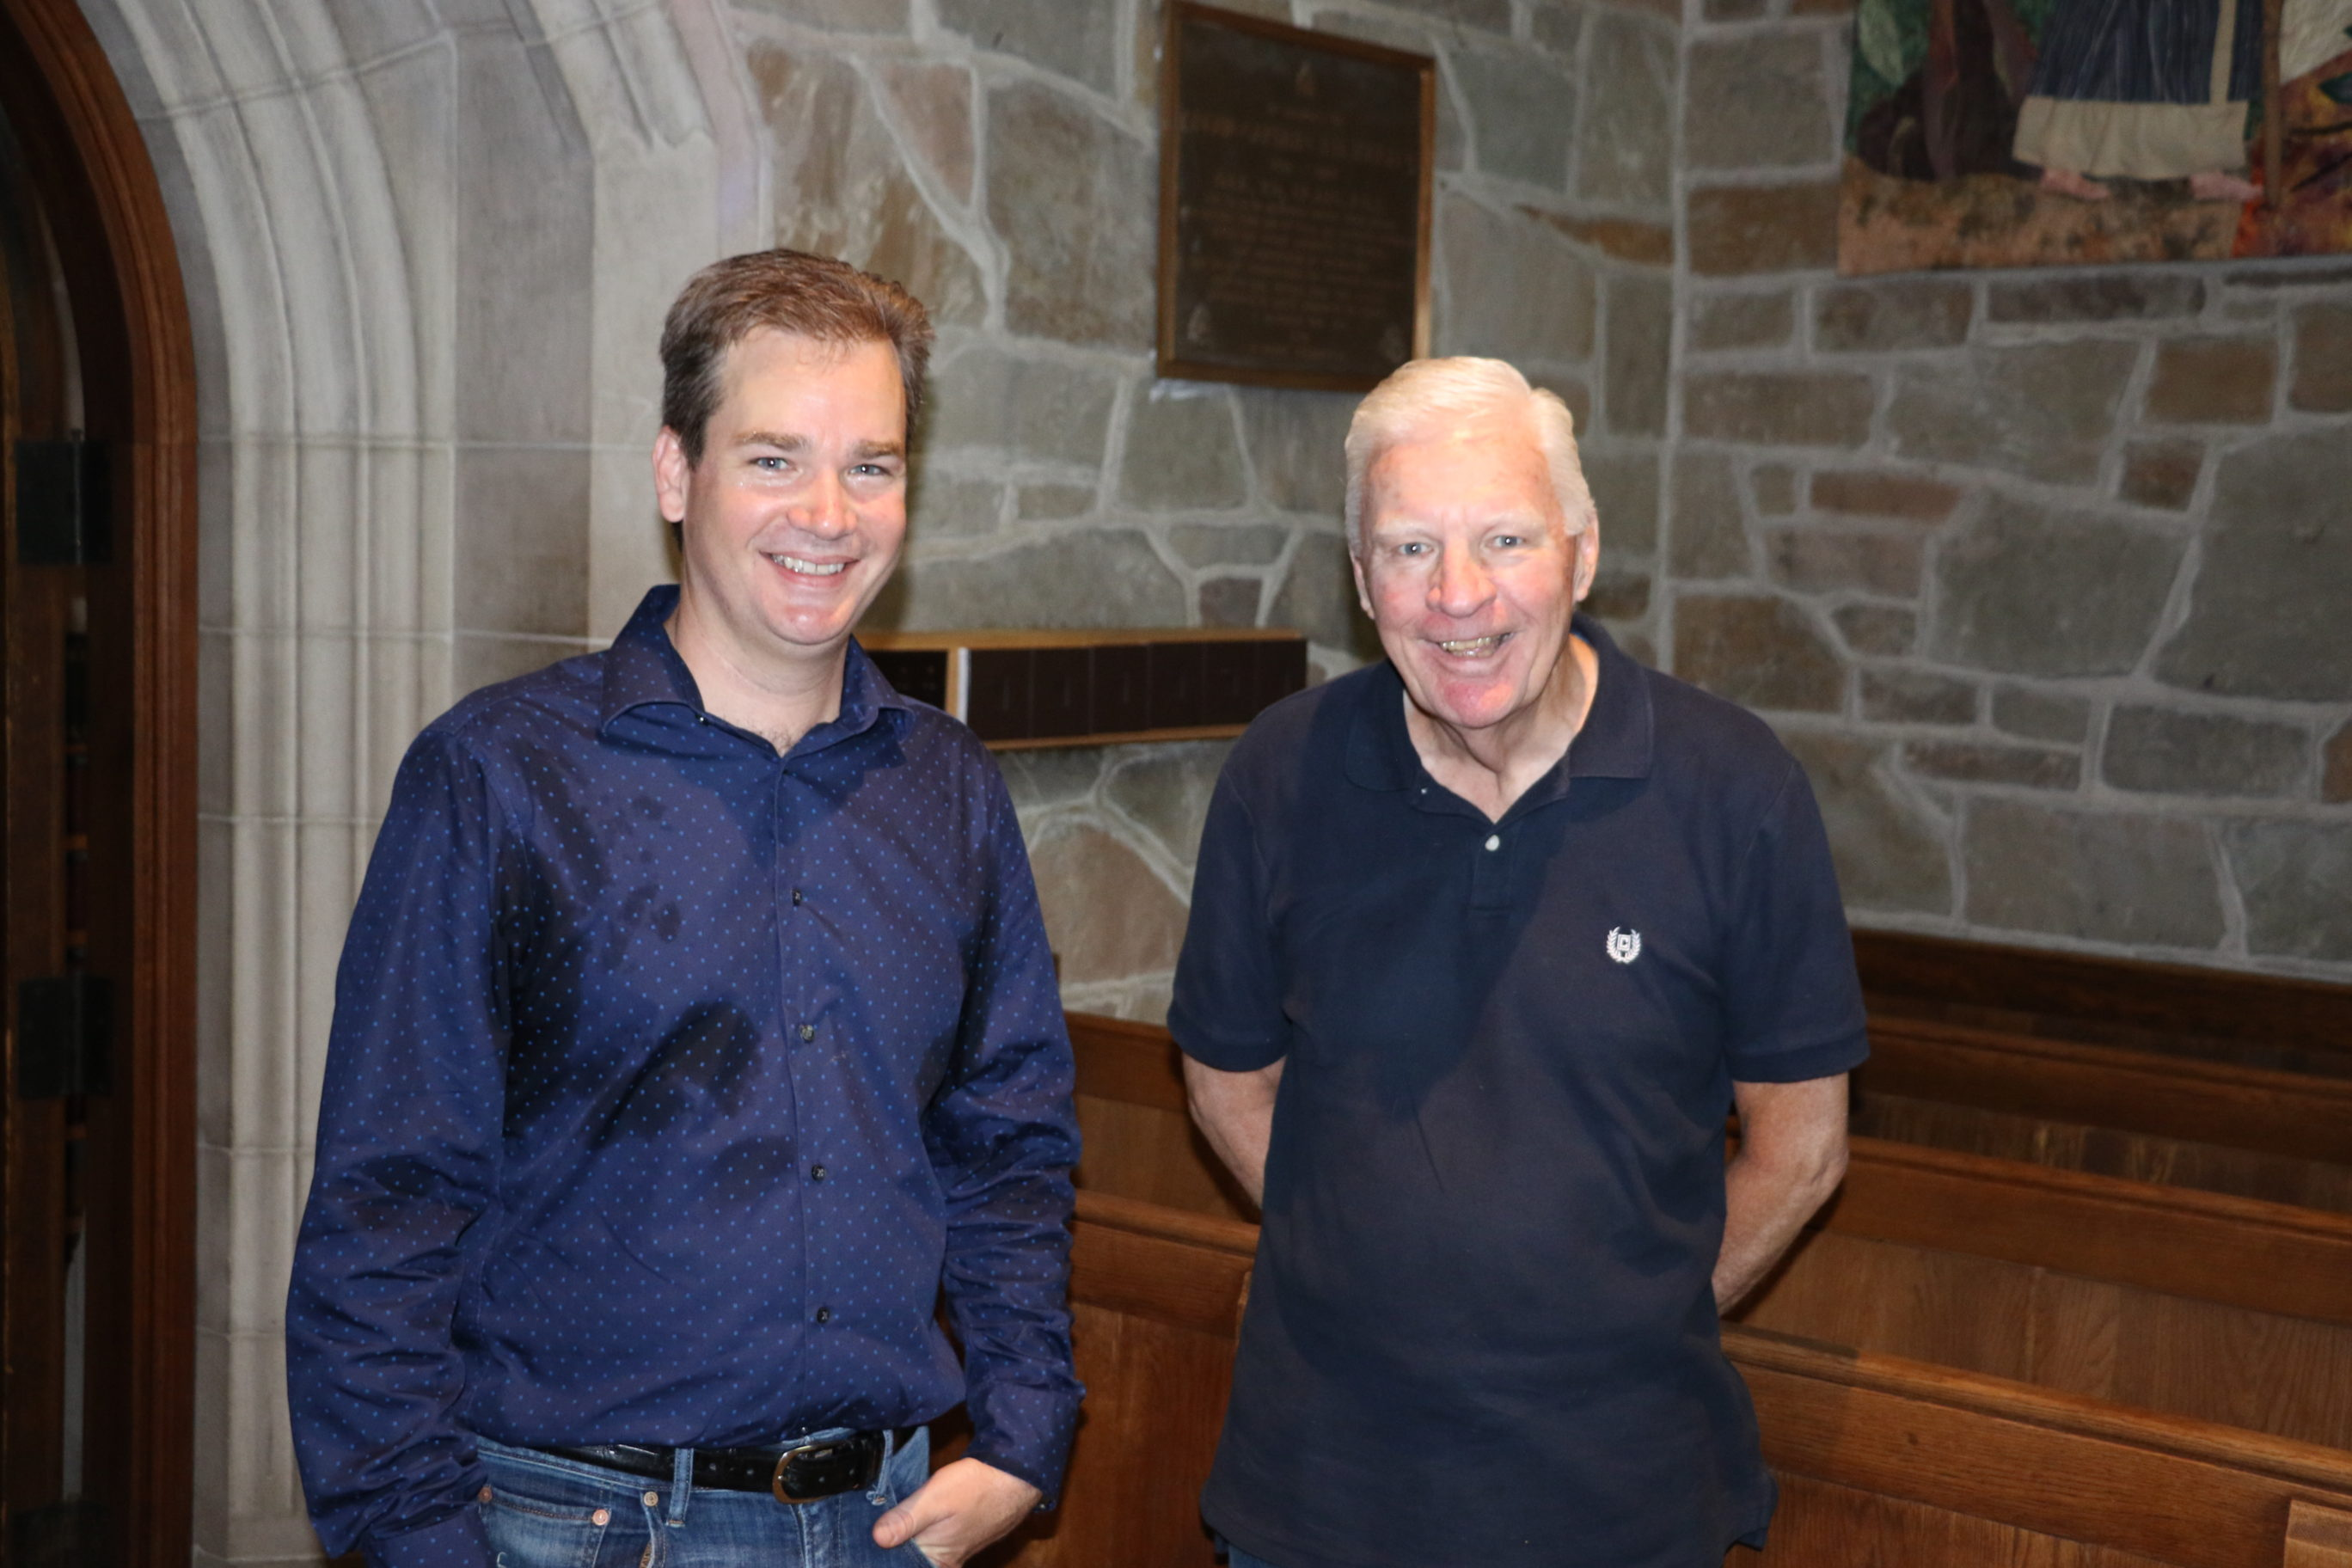 Ken and David Cowan, Father/Son Organists